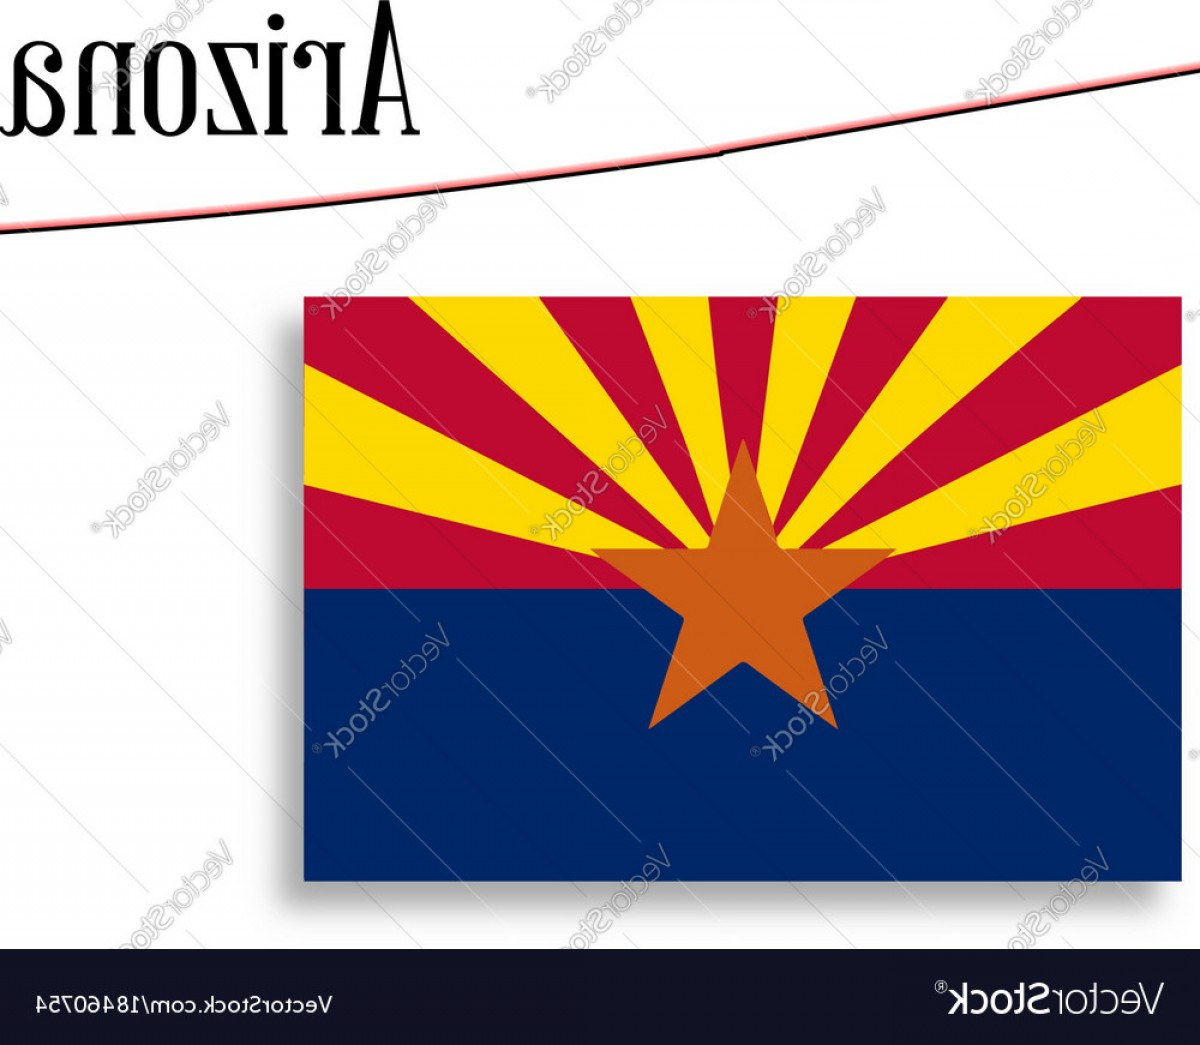 Arizona Flag Vector: Arizona State Map And Flag Vector